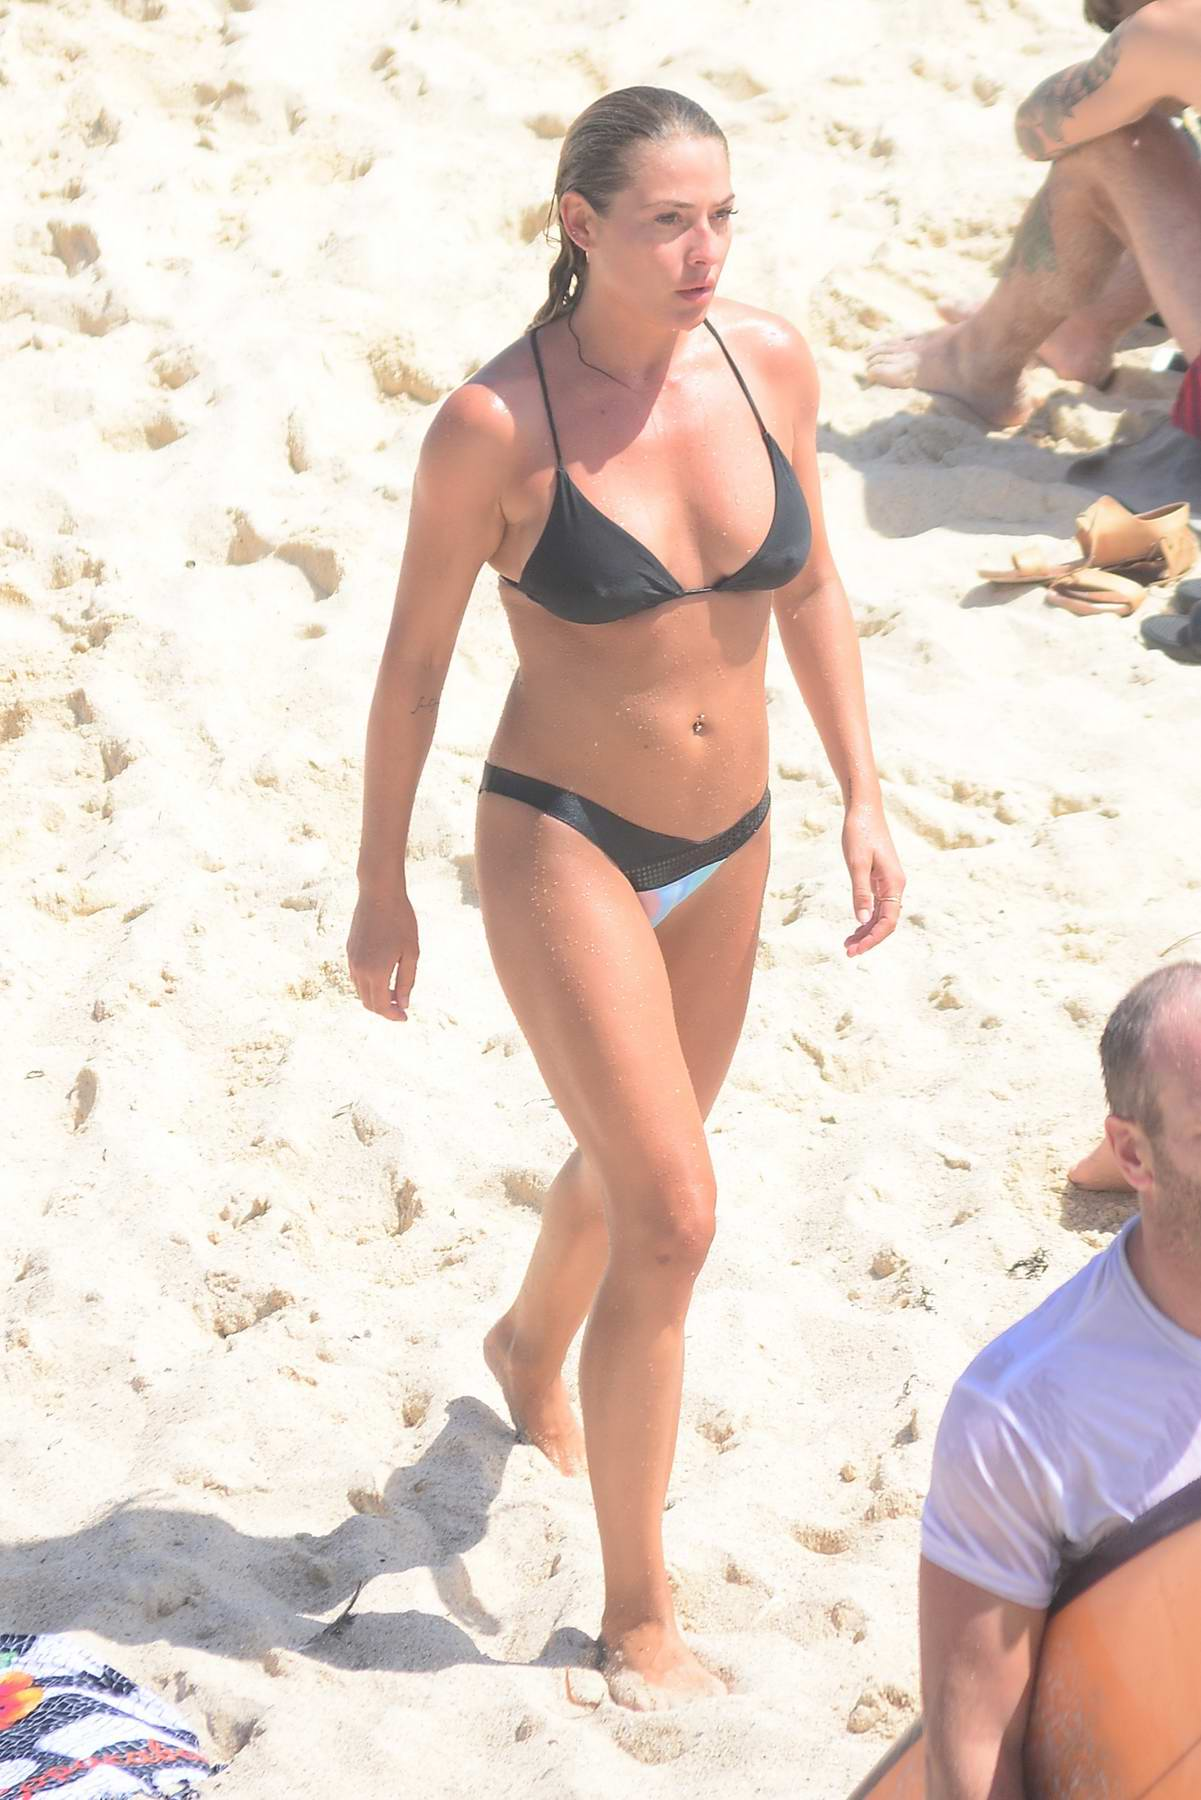 Lisa Clark dons a bikini as she goes for a dip at Tamarama beach, Bondi, Australia